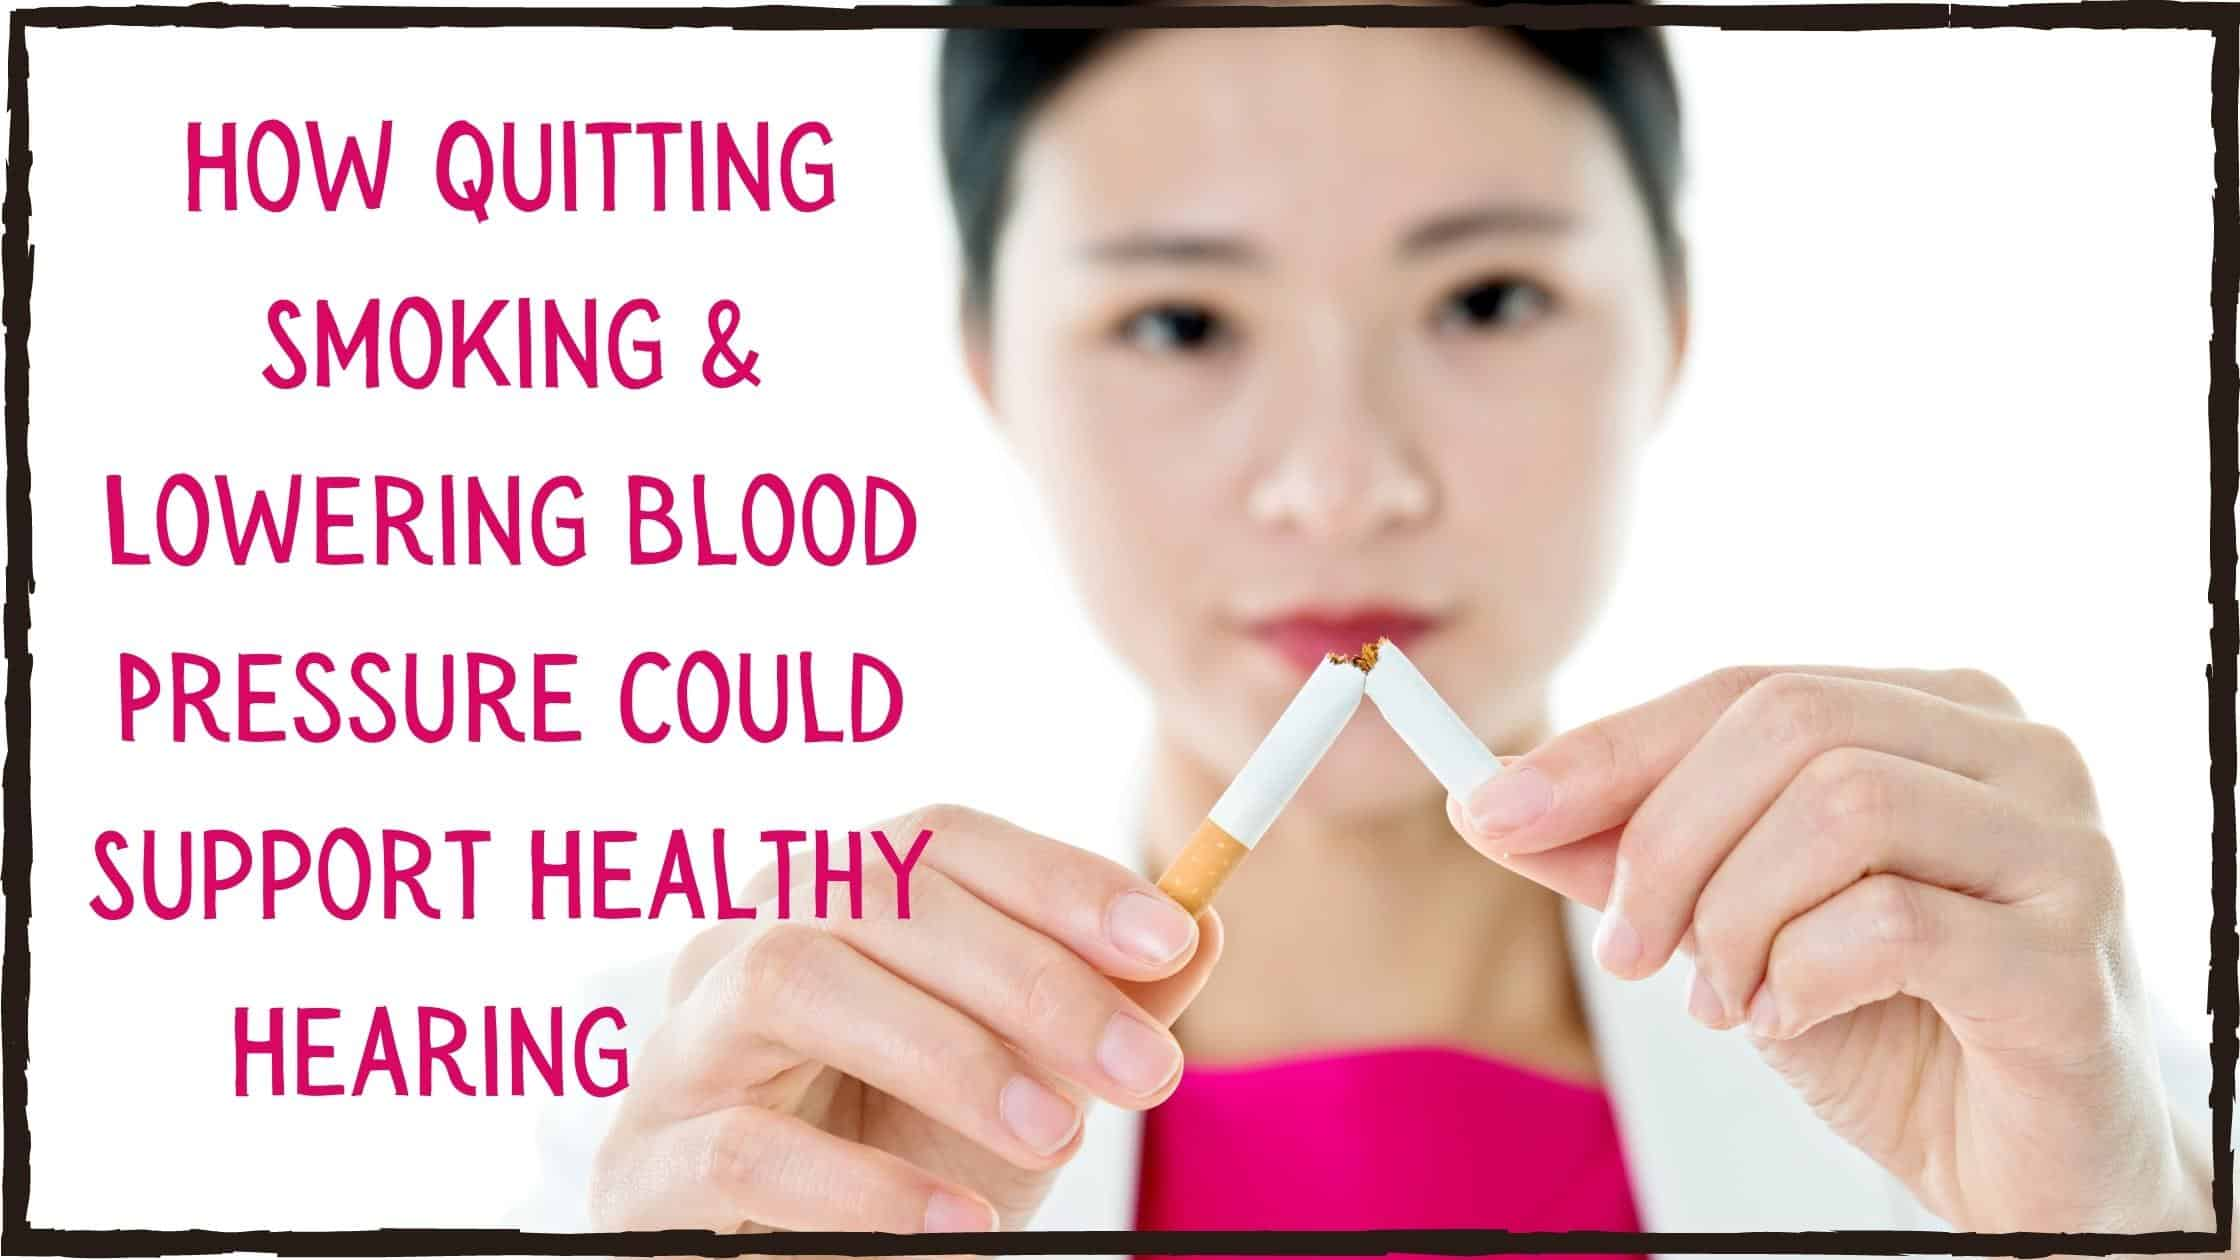 How Quitting Smoking & Lowering Blood Pressure Could Support Healthy Hearing